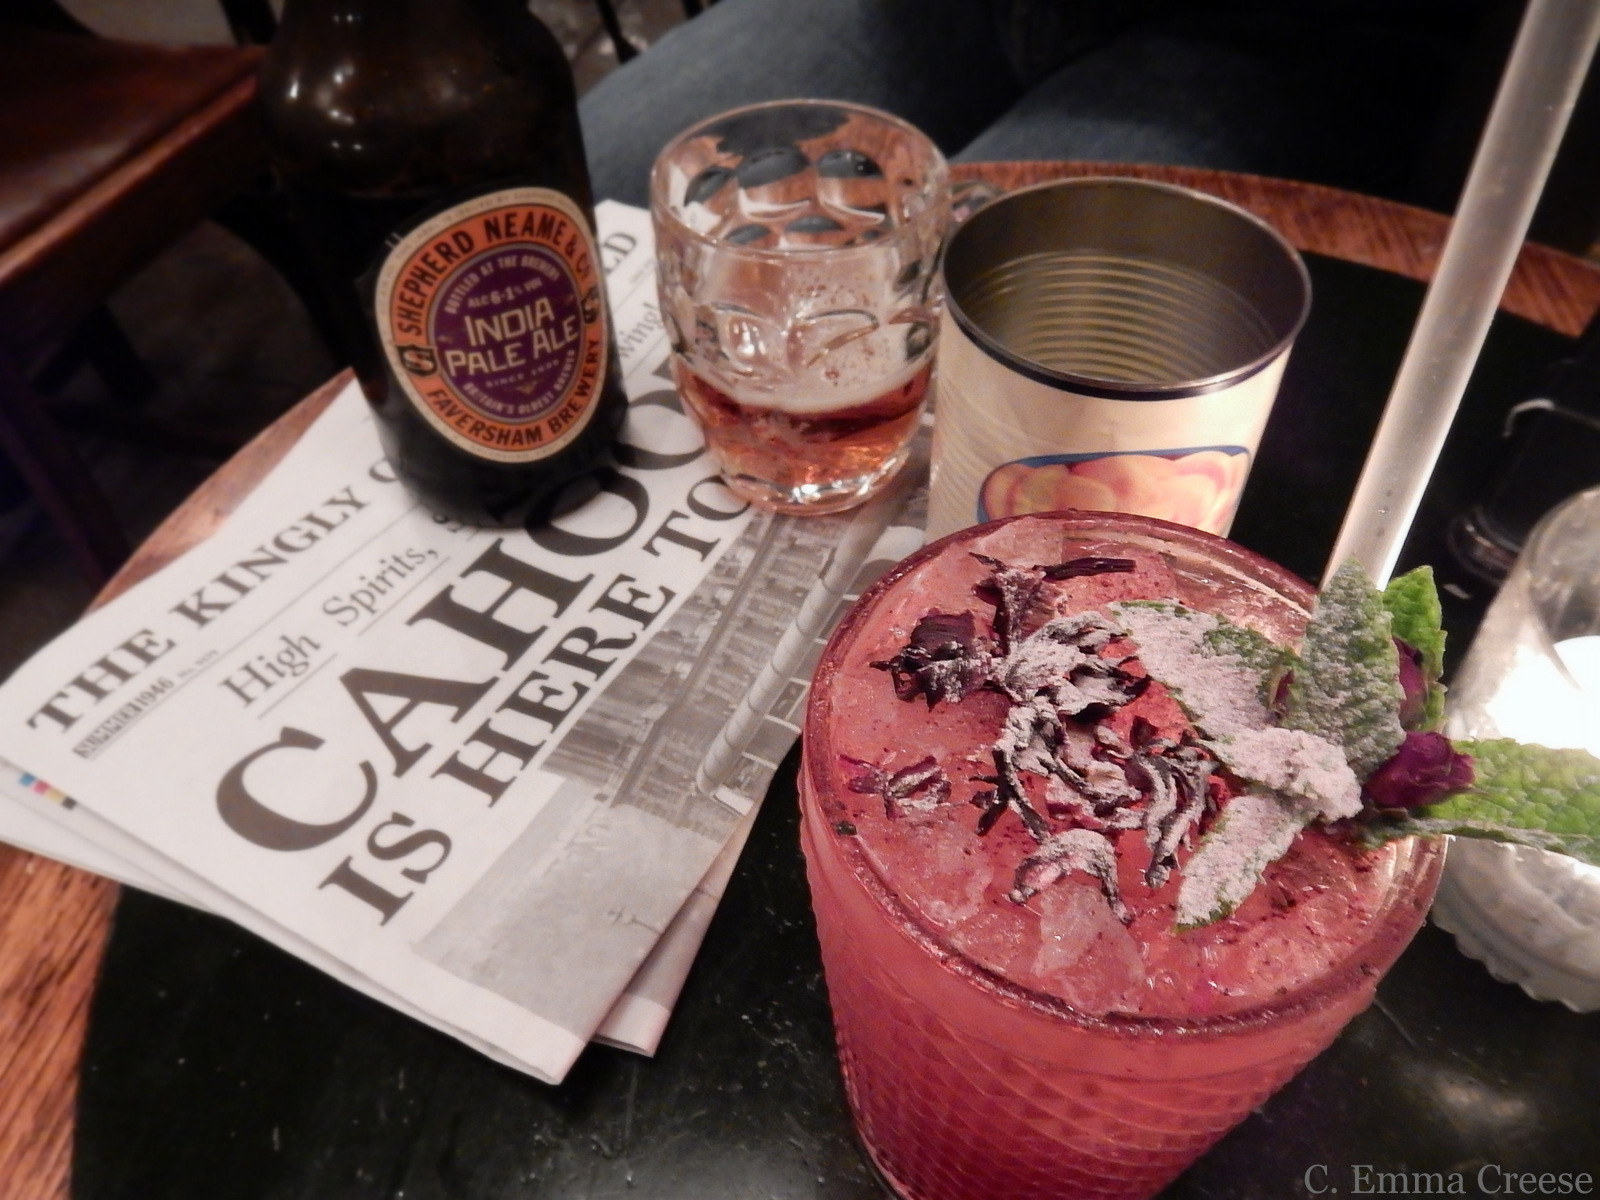 Cahoots, an Underground London Cocktail bar